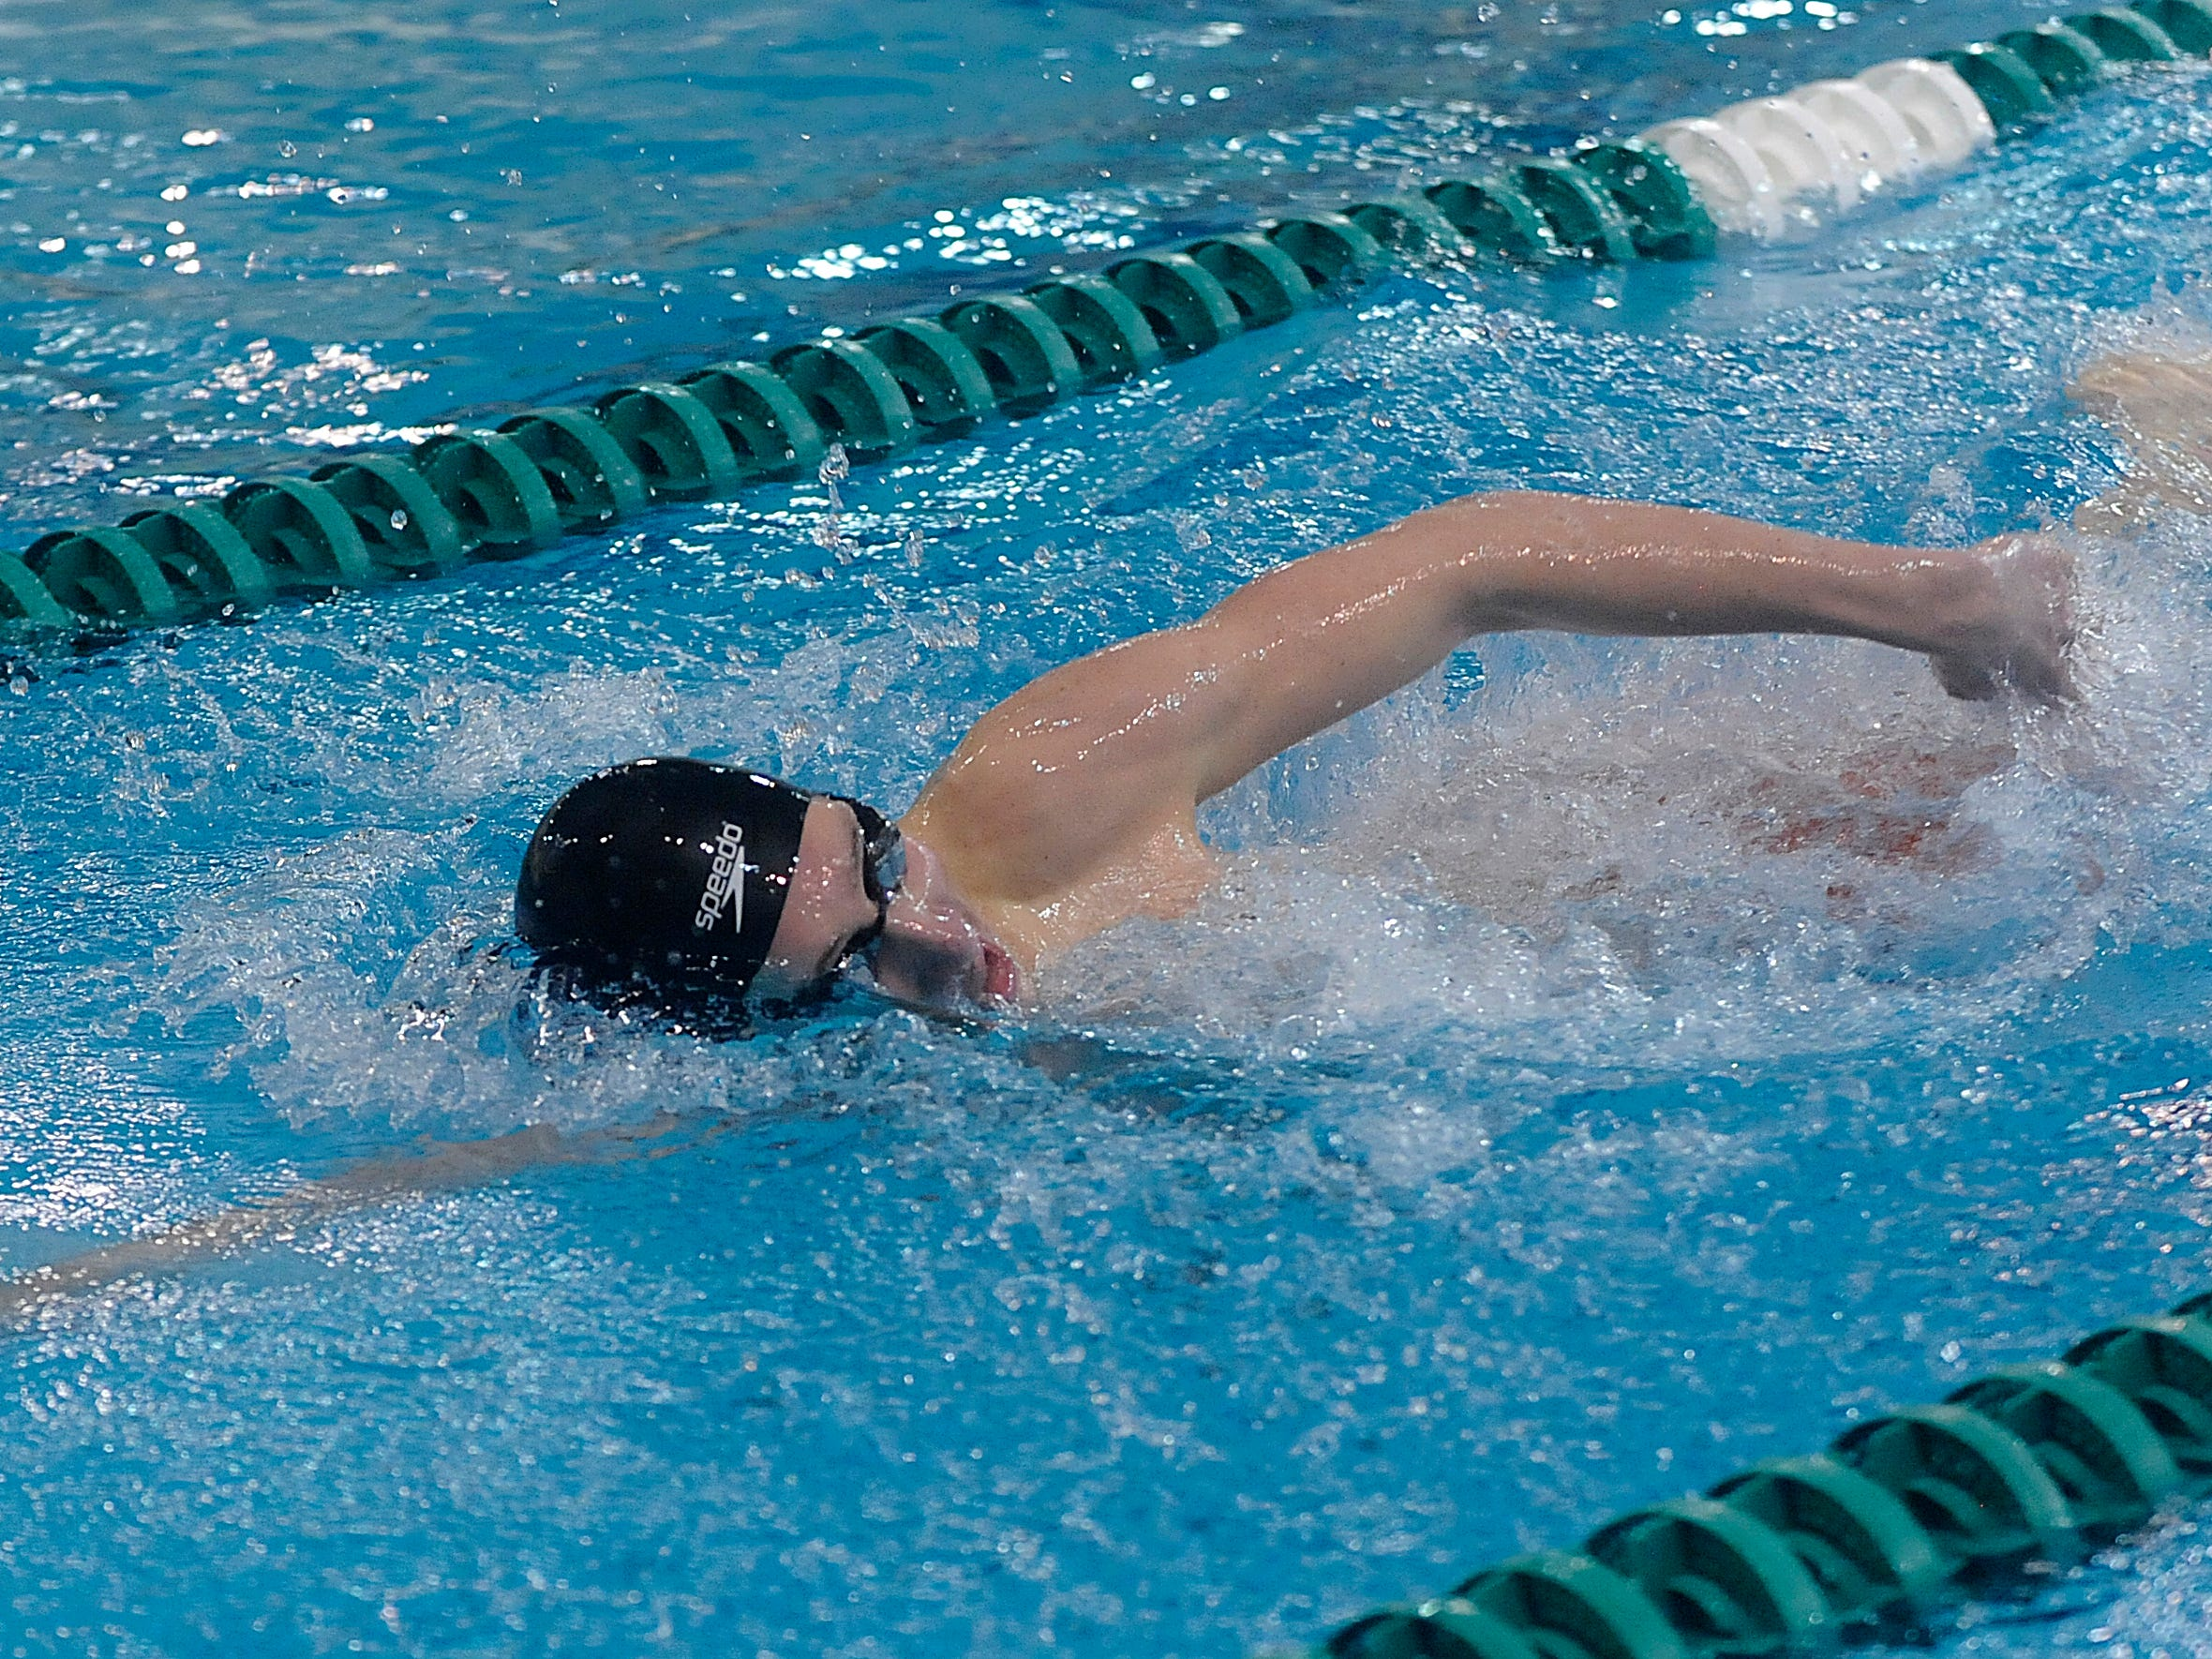 Granville's Timmy Spichiger swims in the 500 free during the division II district swimming Friday at Ohio University. Spichiger won the event and will advance to the state tournament. For more on district swimming, turn to 2B. For more photos, go to NewarkAdvocate.com